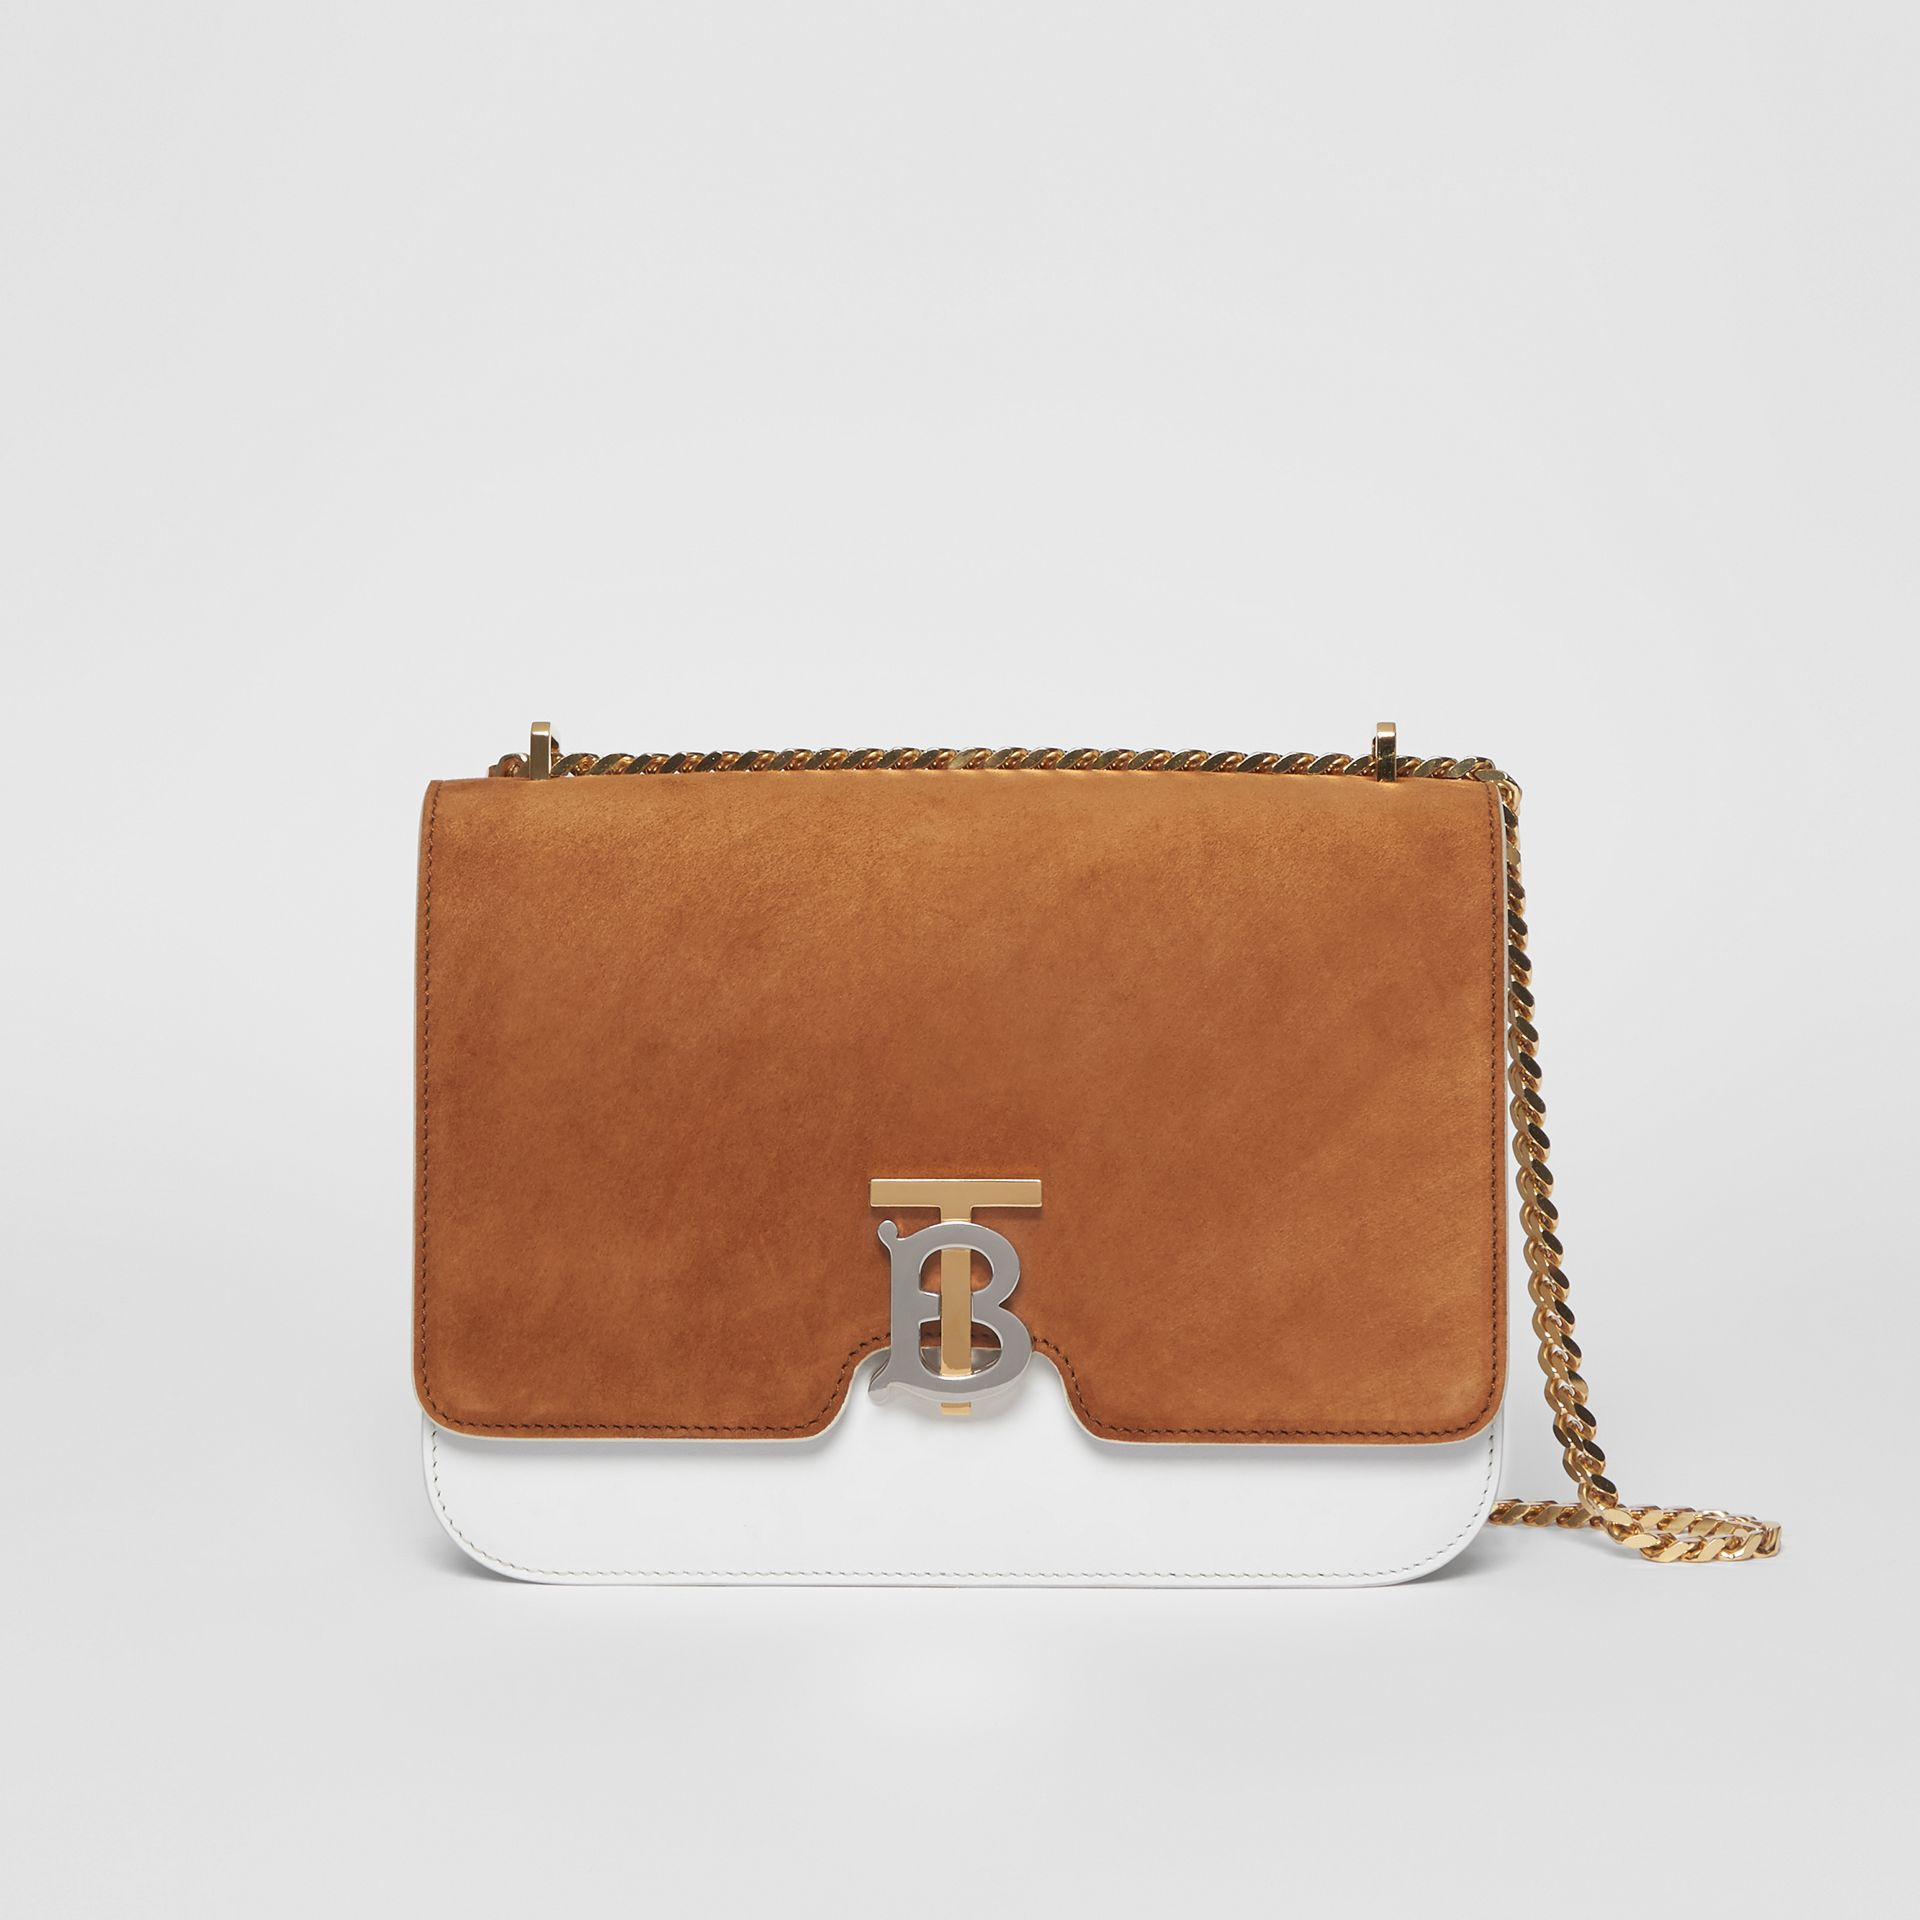 Medium Two-tone Leather and Suede TB Bag in White/brown - Women | Burberry - gallery image 0